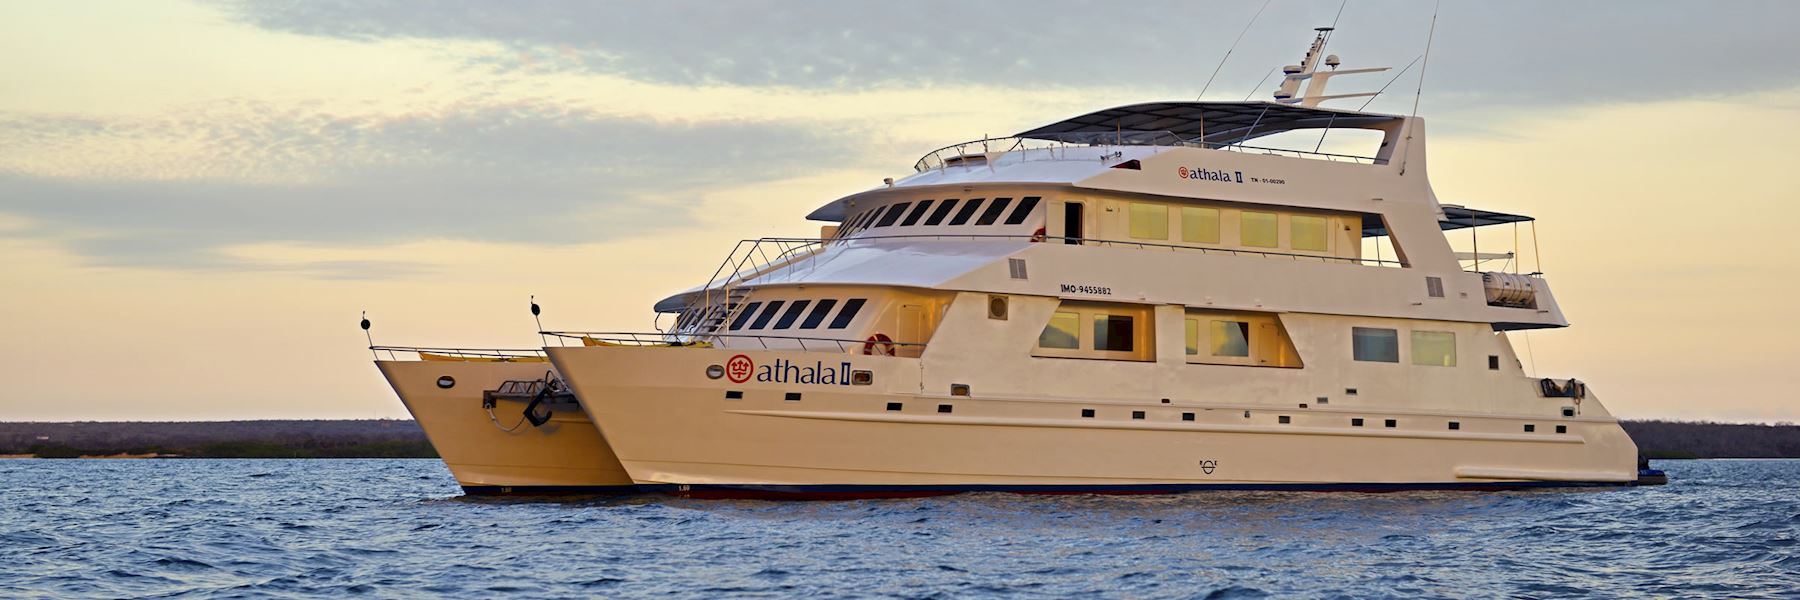 Galapagos Cruises: Best Price and Service Guarantee!